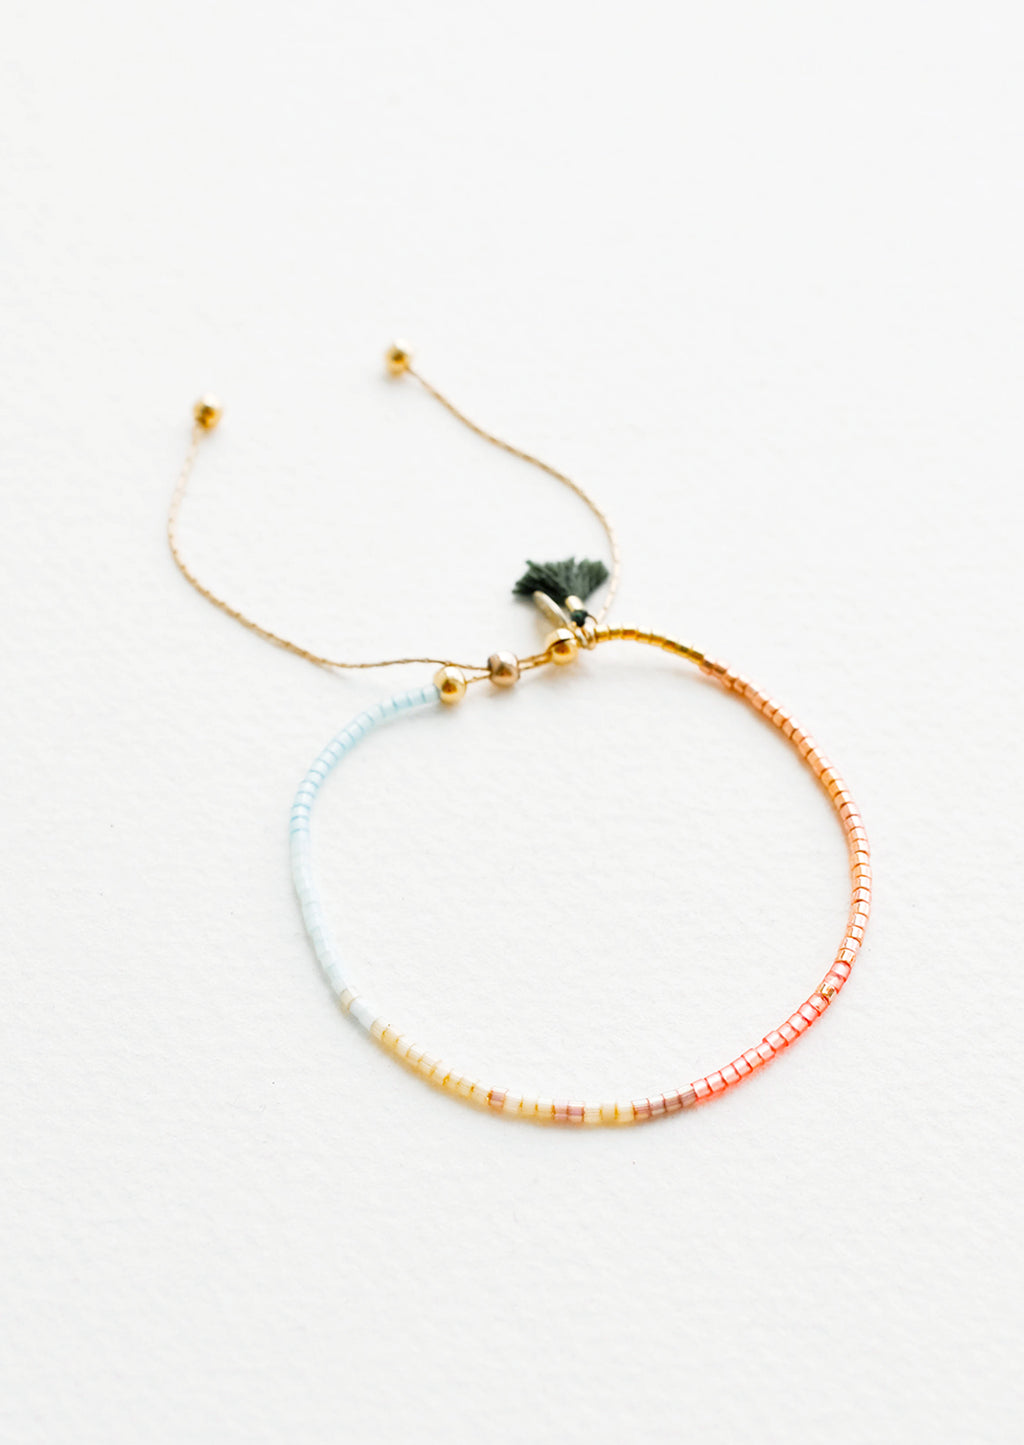 Copper / Sky Blue / Maize: Delicate bracelet of glass beads in a gradient from pale blue to deep rust on a thin gold chain.